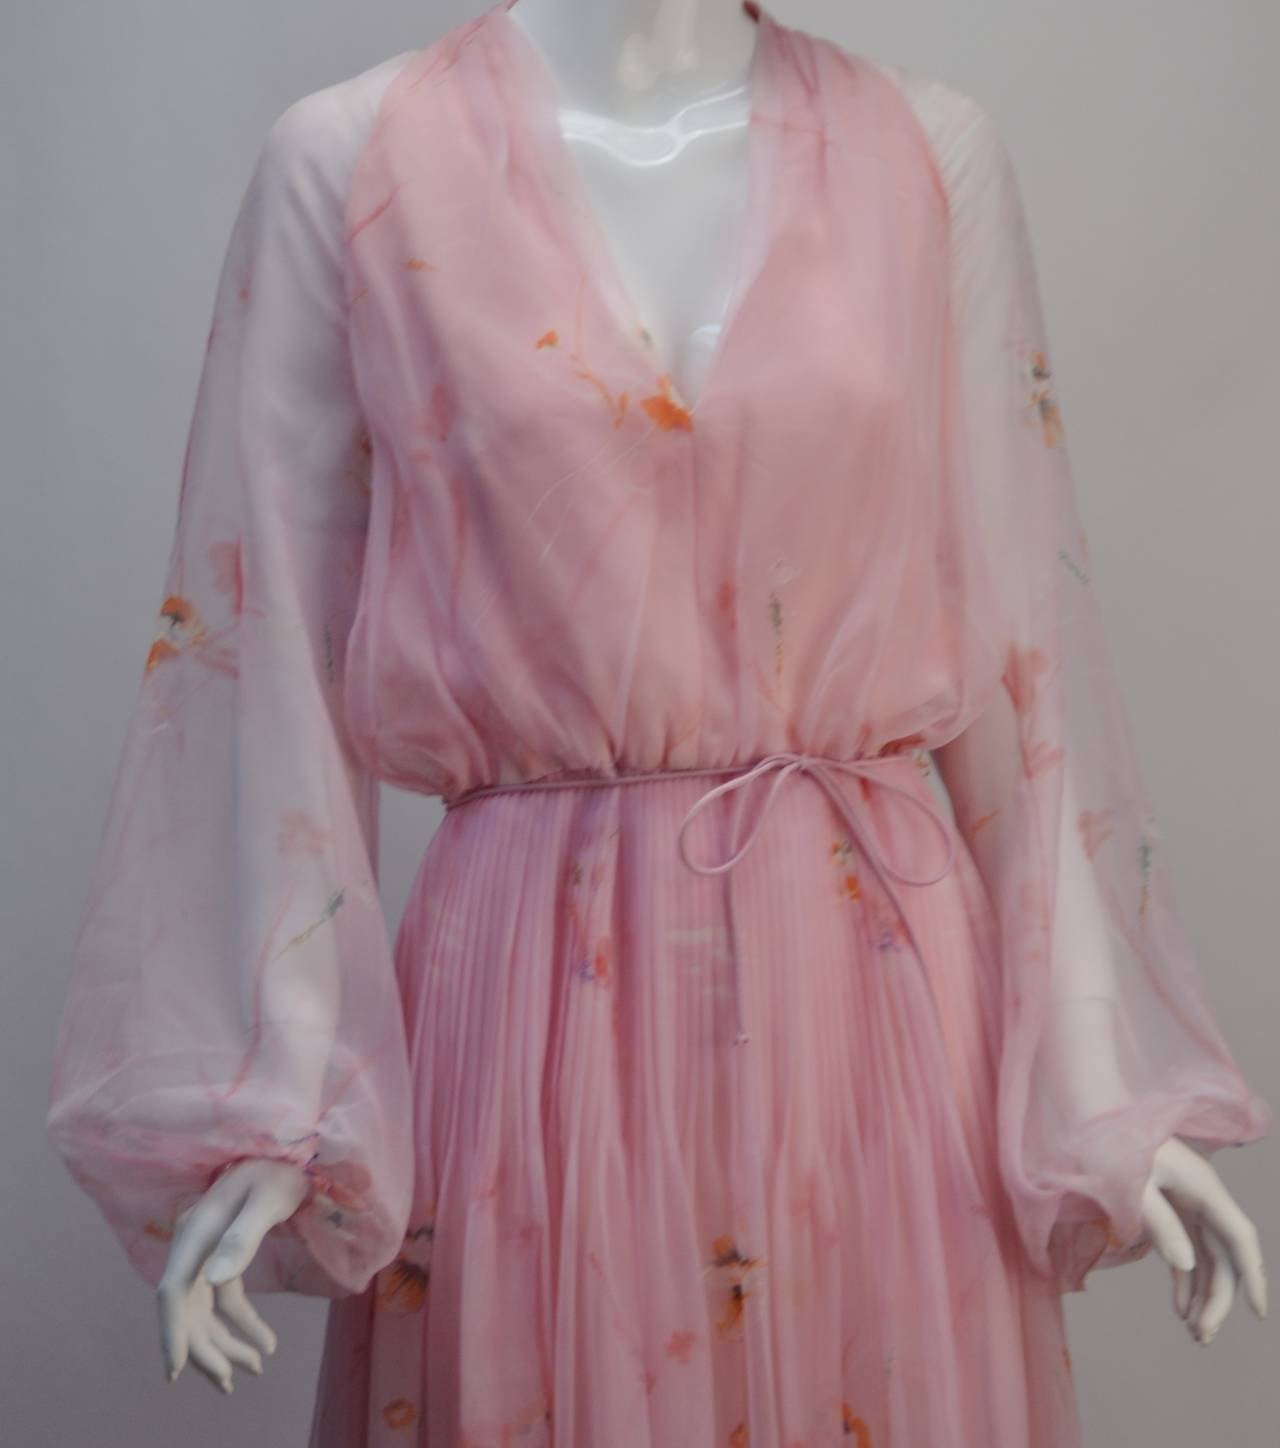 1970s Lillie Rubin Pink Sheer Dress In Excellent Condition For Sale In Houston, TX